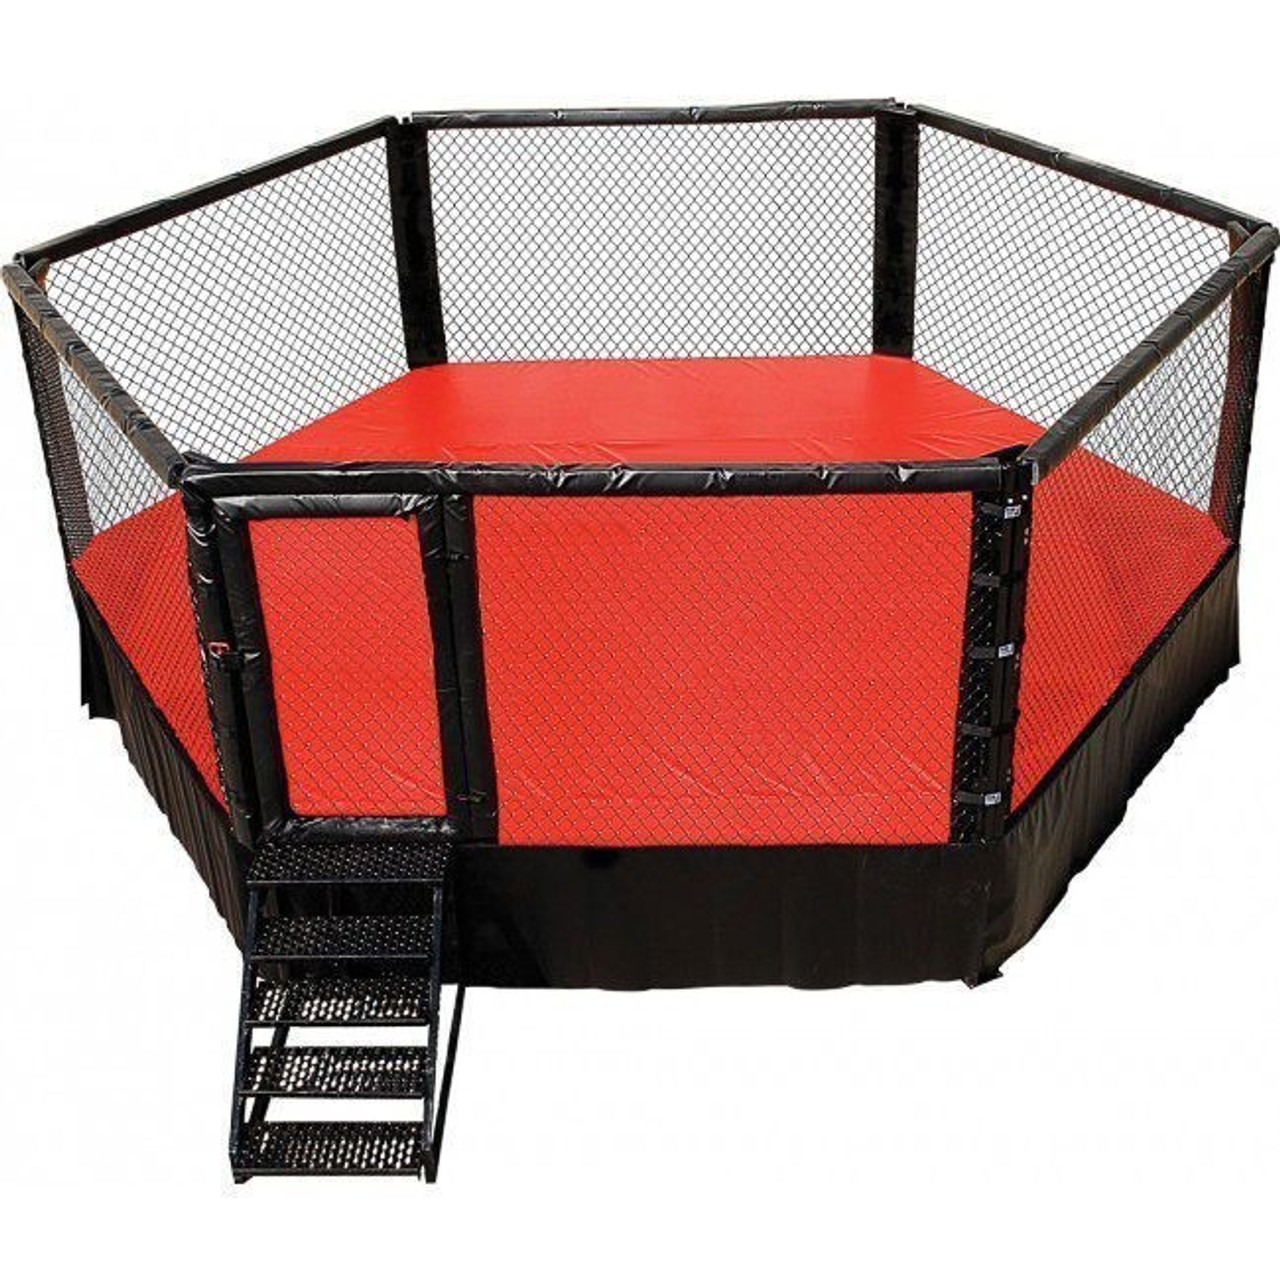 PRO MMA Elevated Hexagon Competition Cage | Made in USA